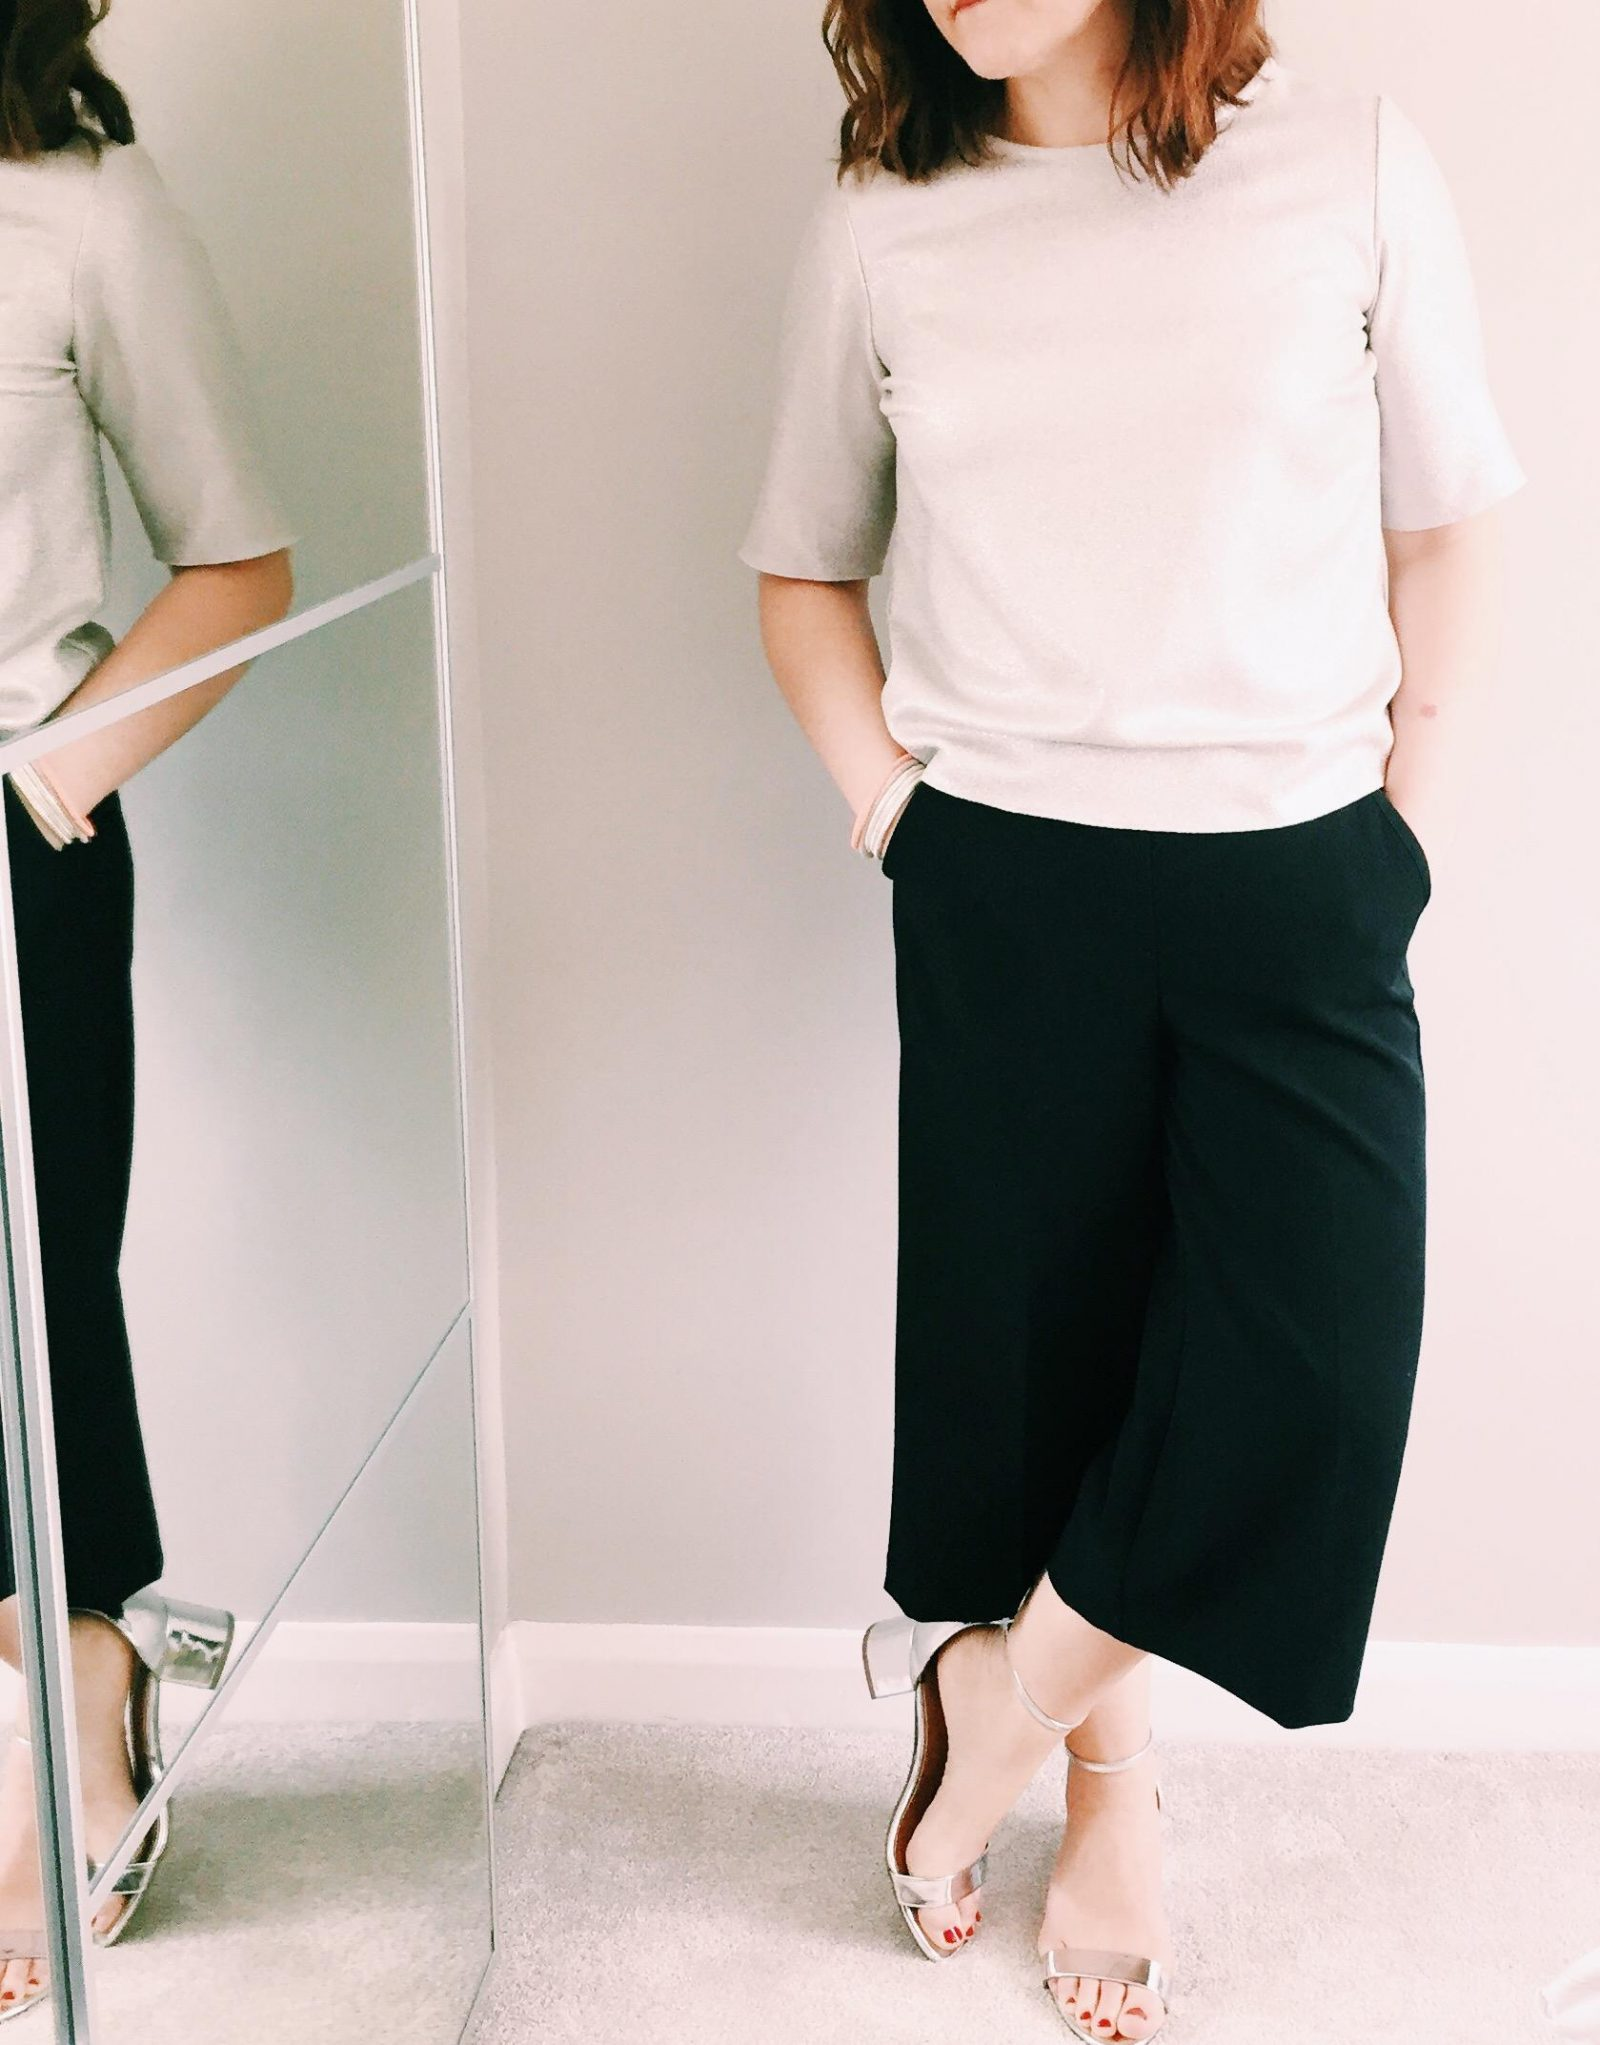 Styling Your Culottes